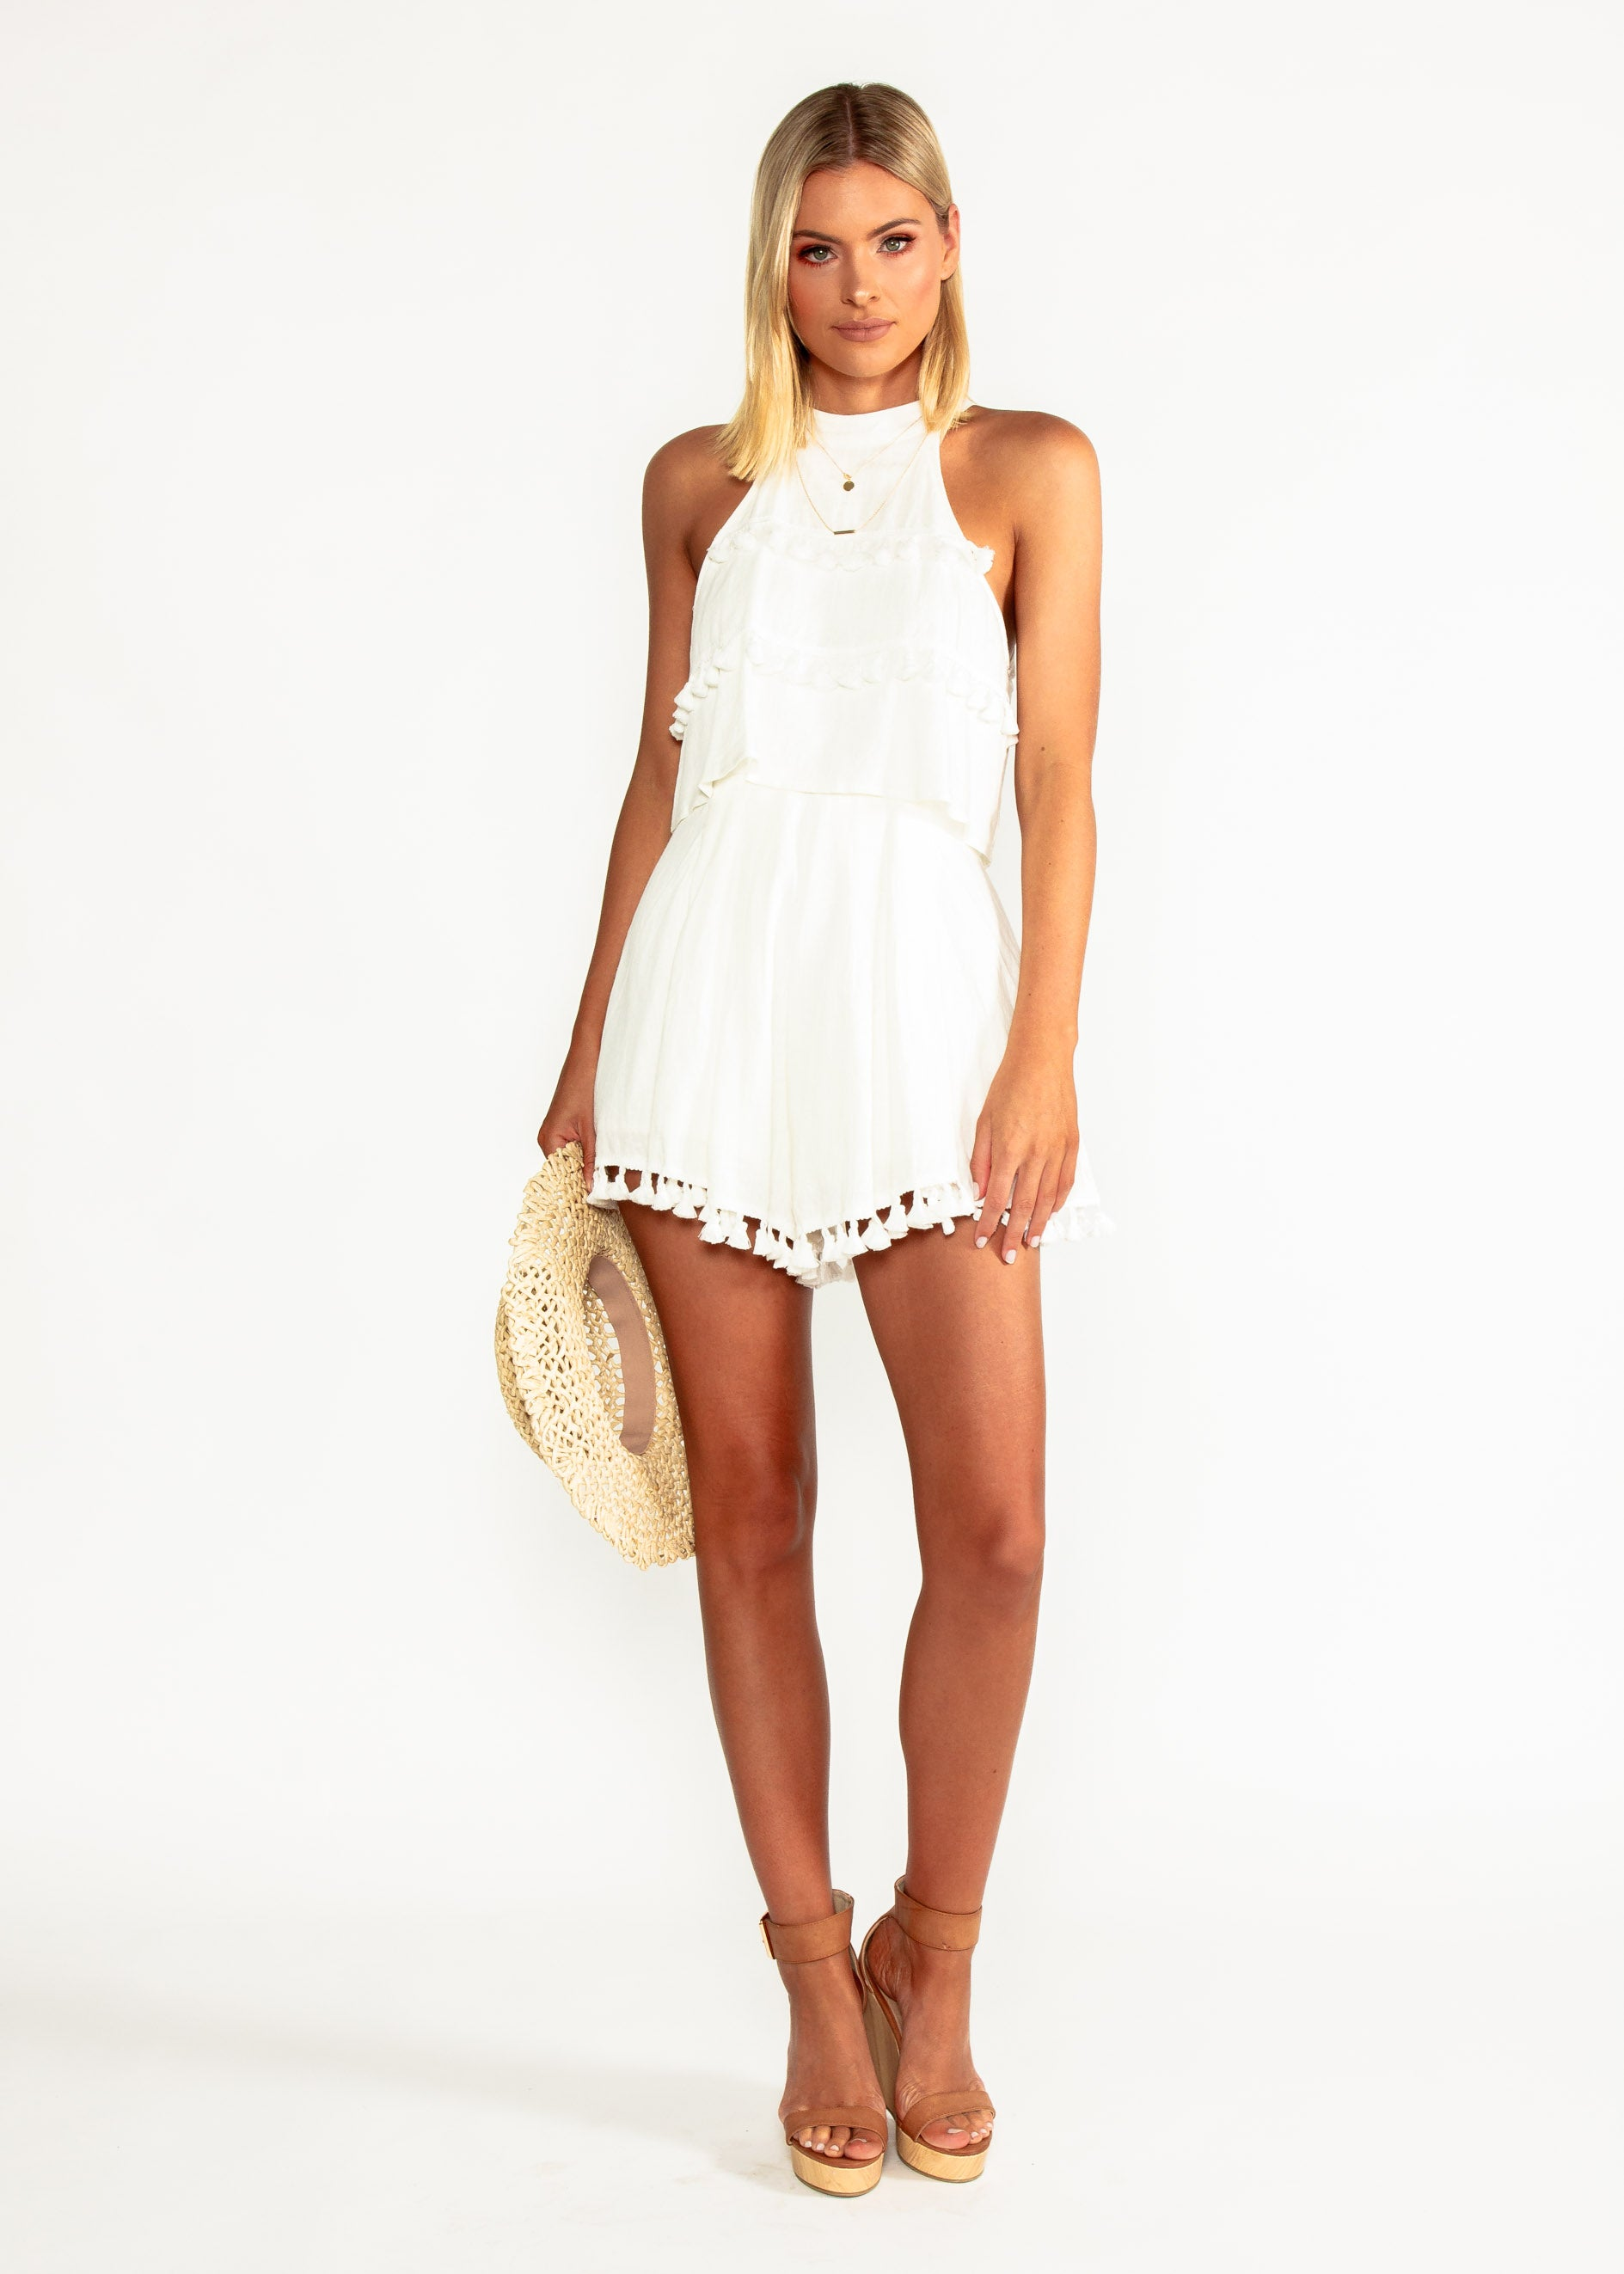 Taryn Linen Playsuit - Cream